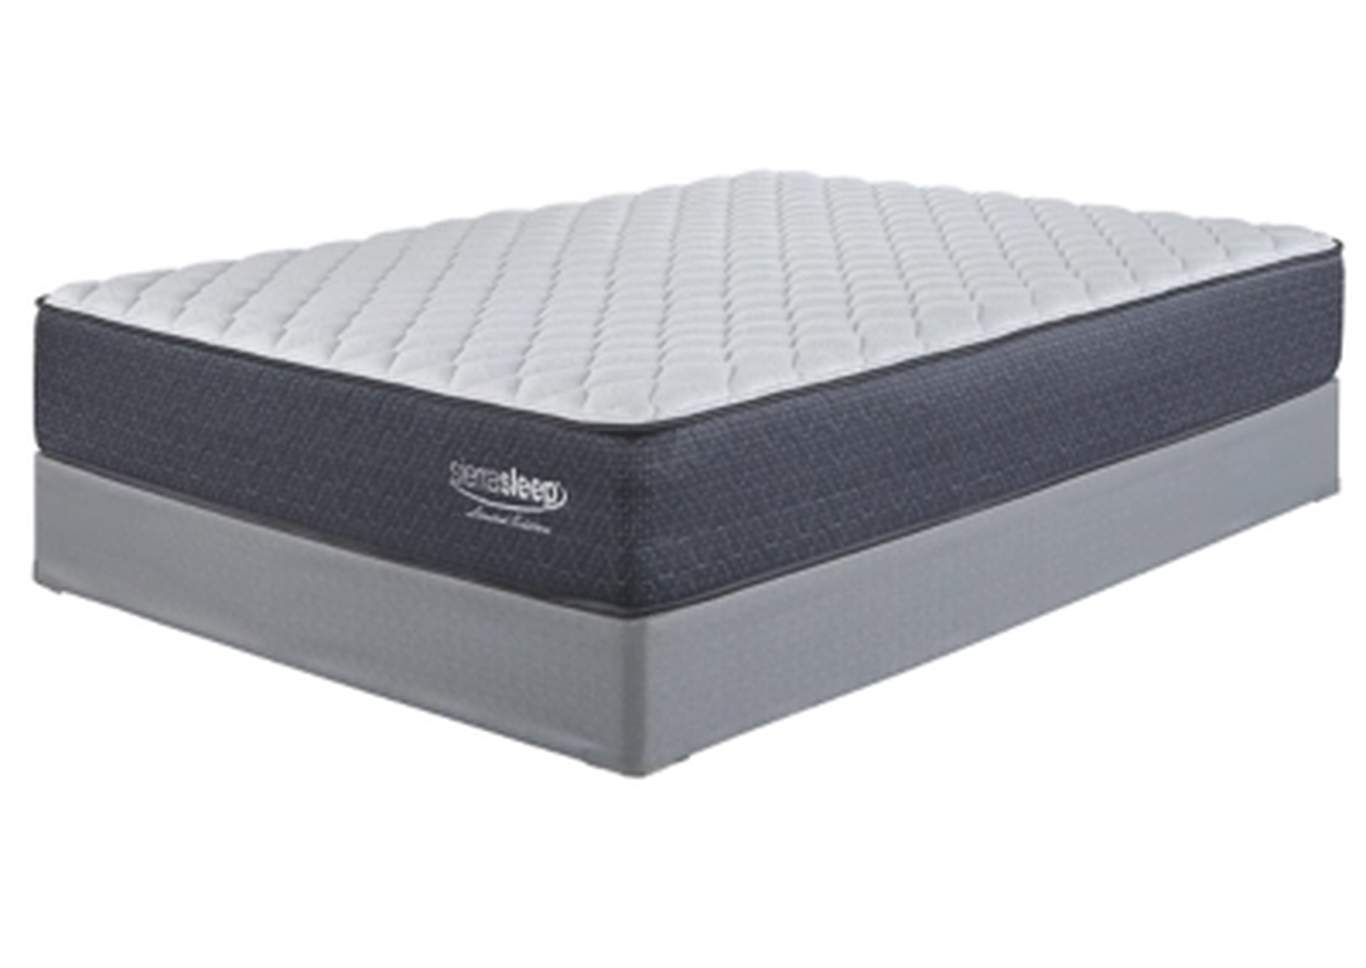 Limited Edition Firm White Twin Mattress w/Foundation,Sierra Sleep